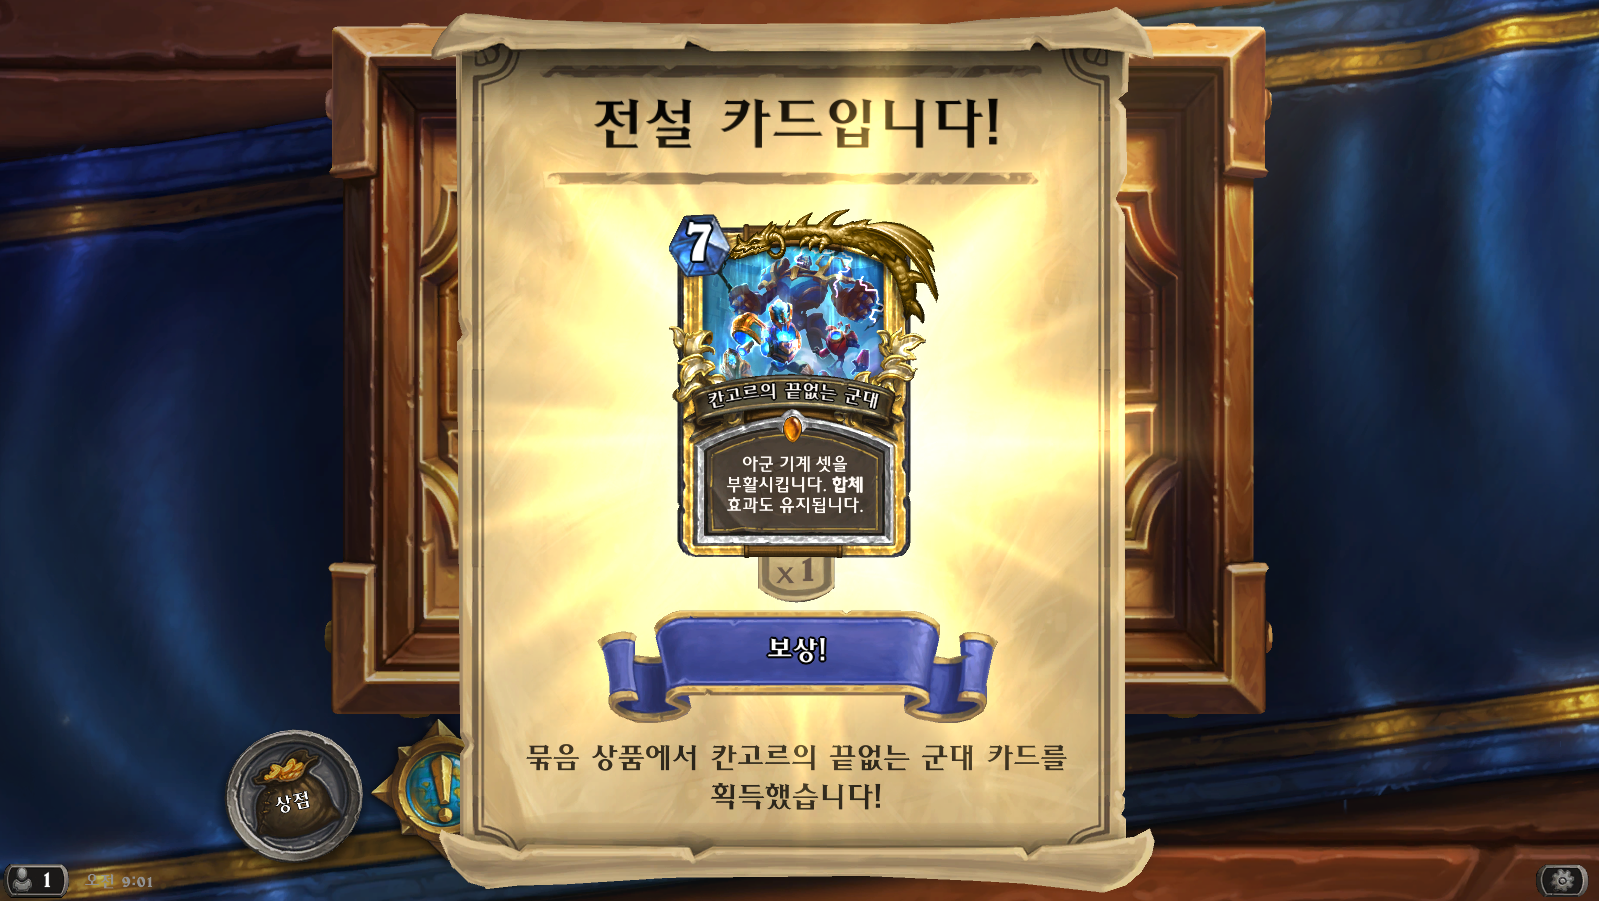 Hearthstone Screenshot 08-08-18 09.01.58.png